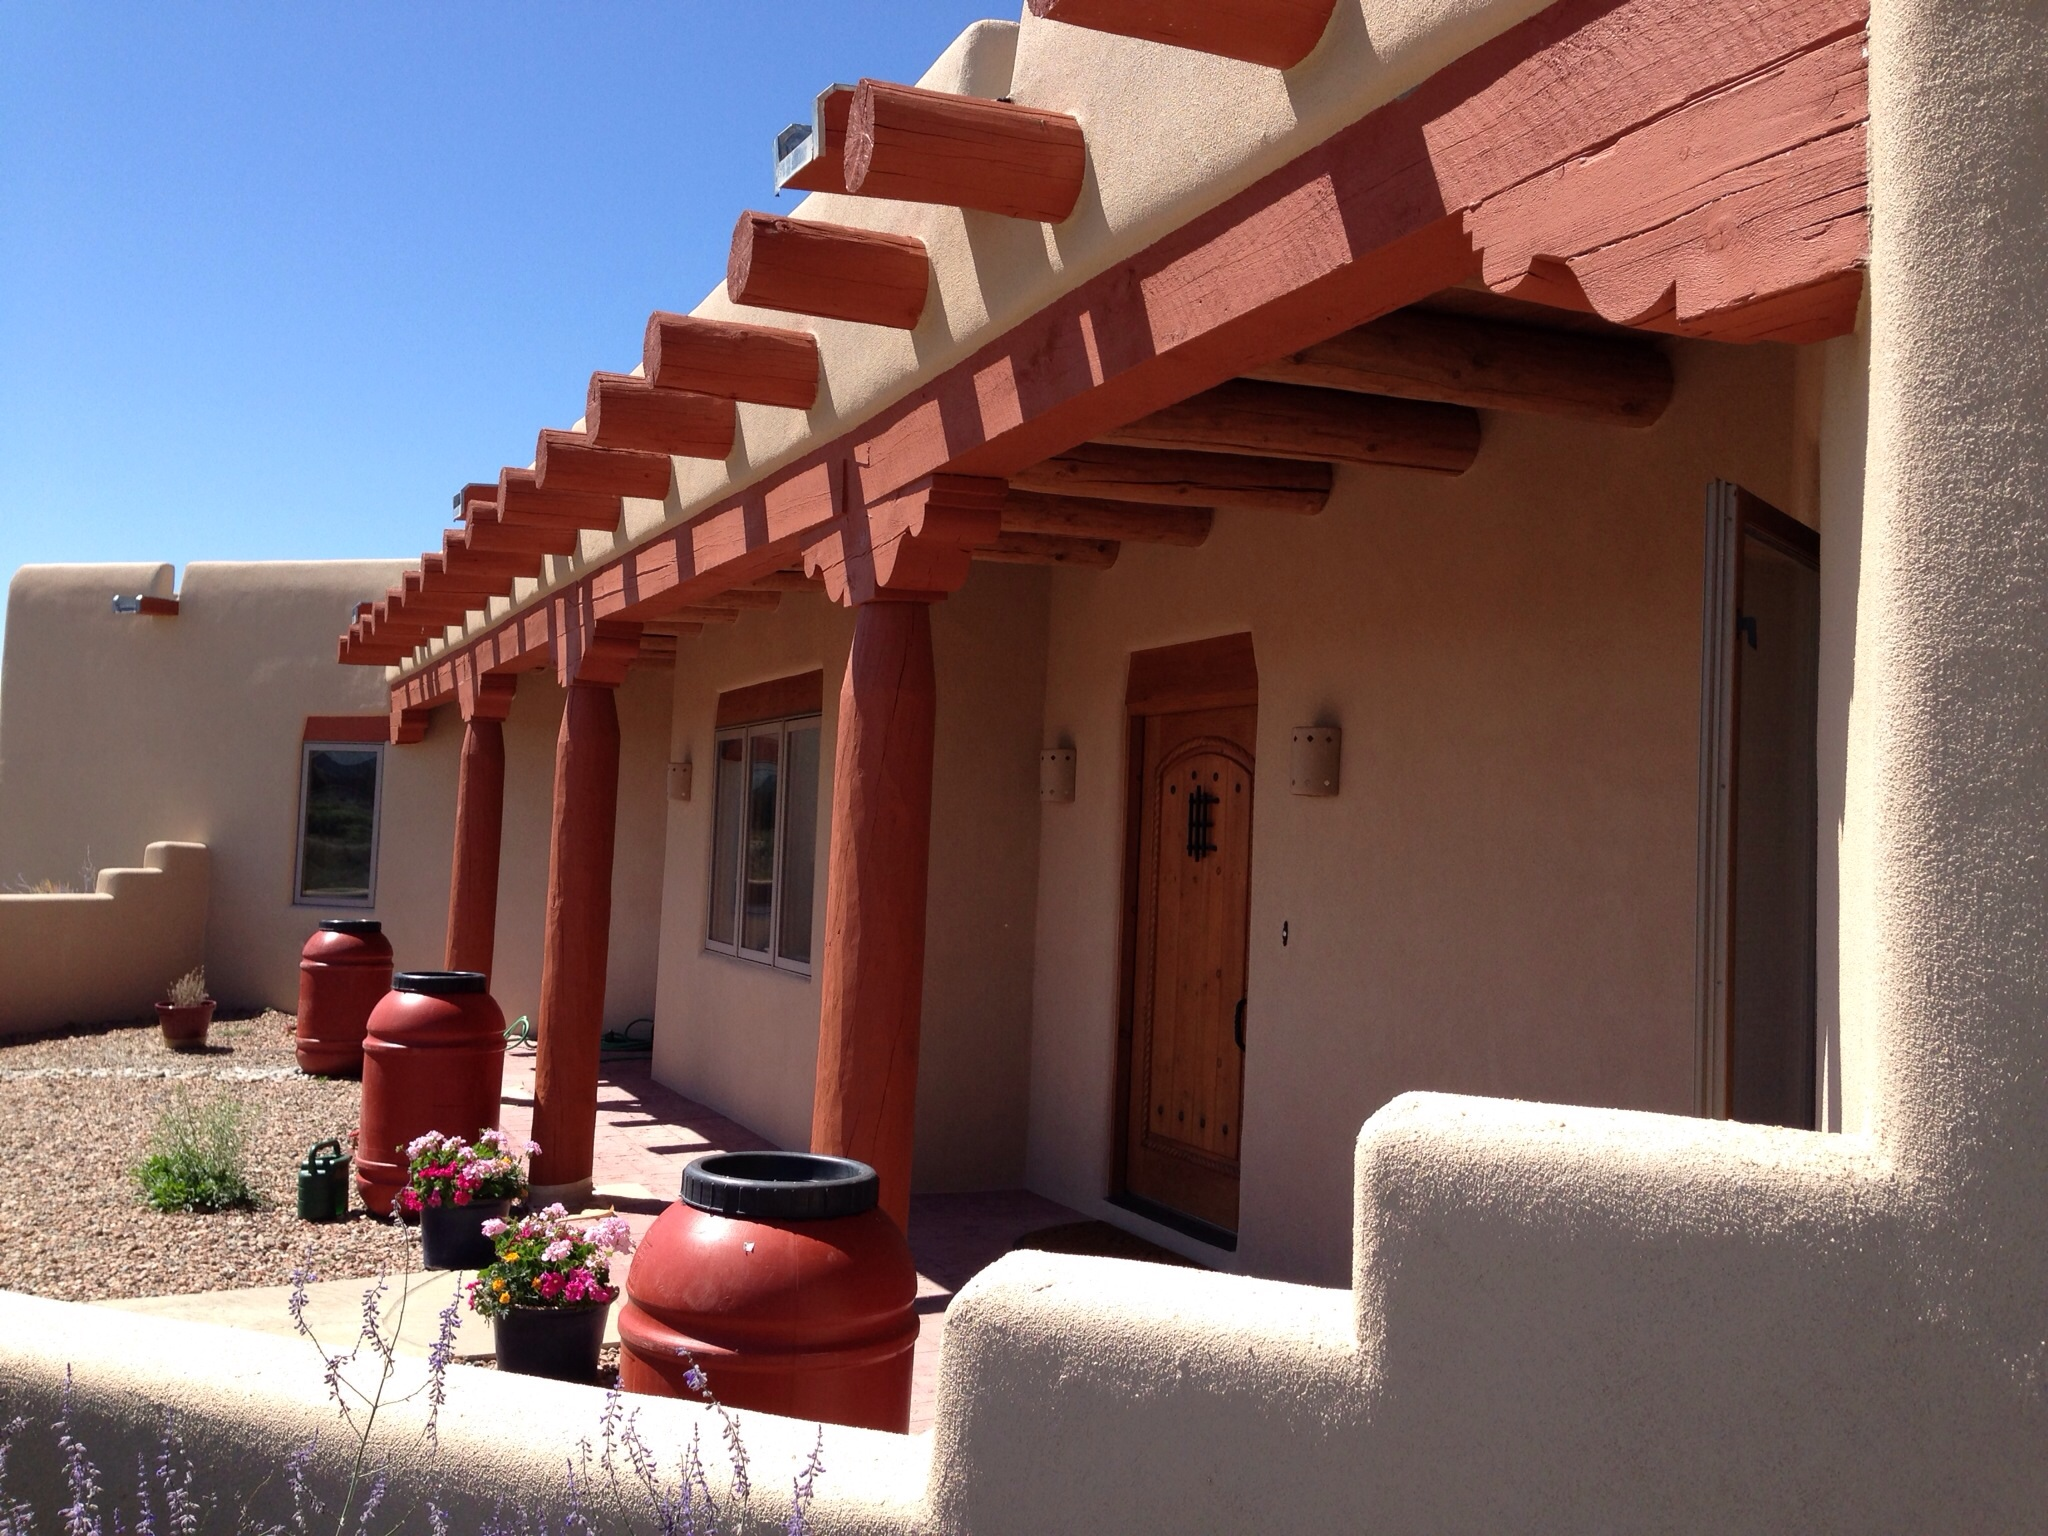 Santa Fe Stucco and Roofing image 0